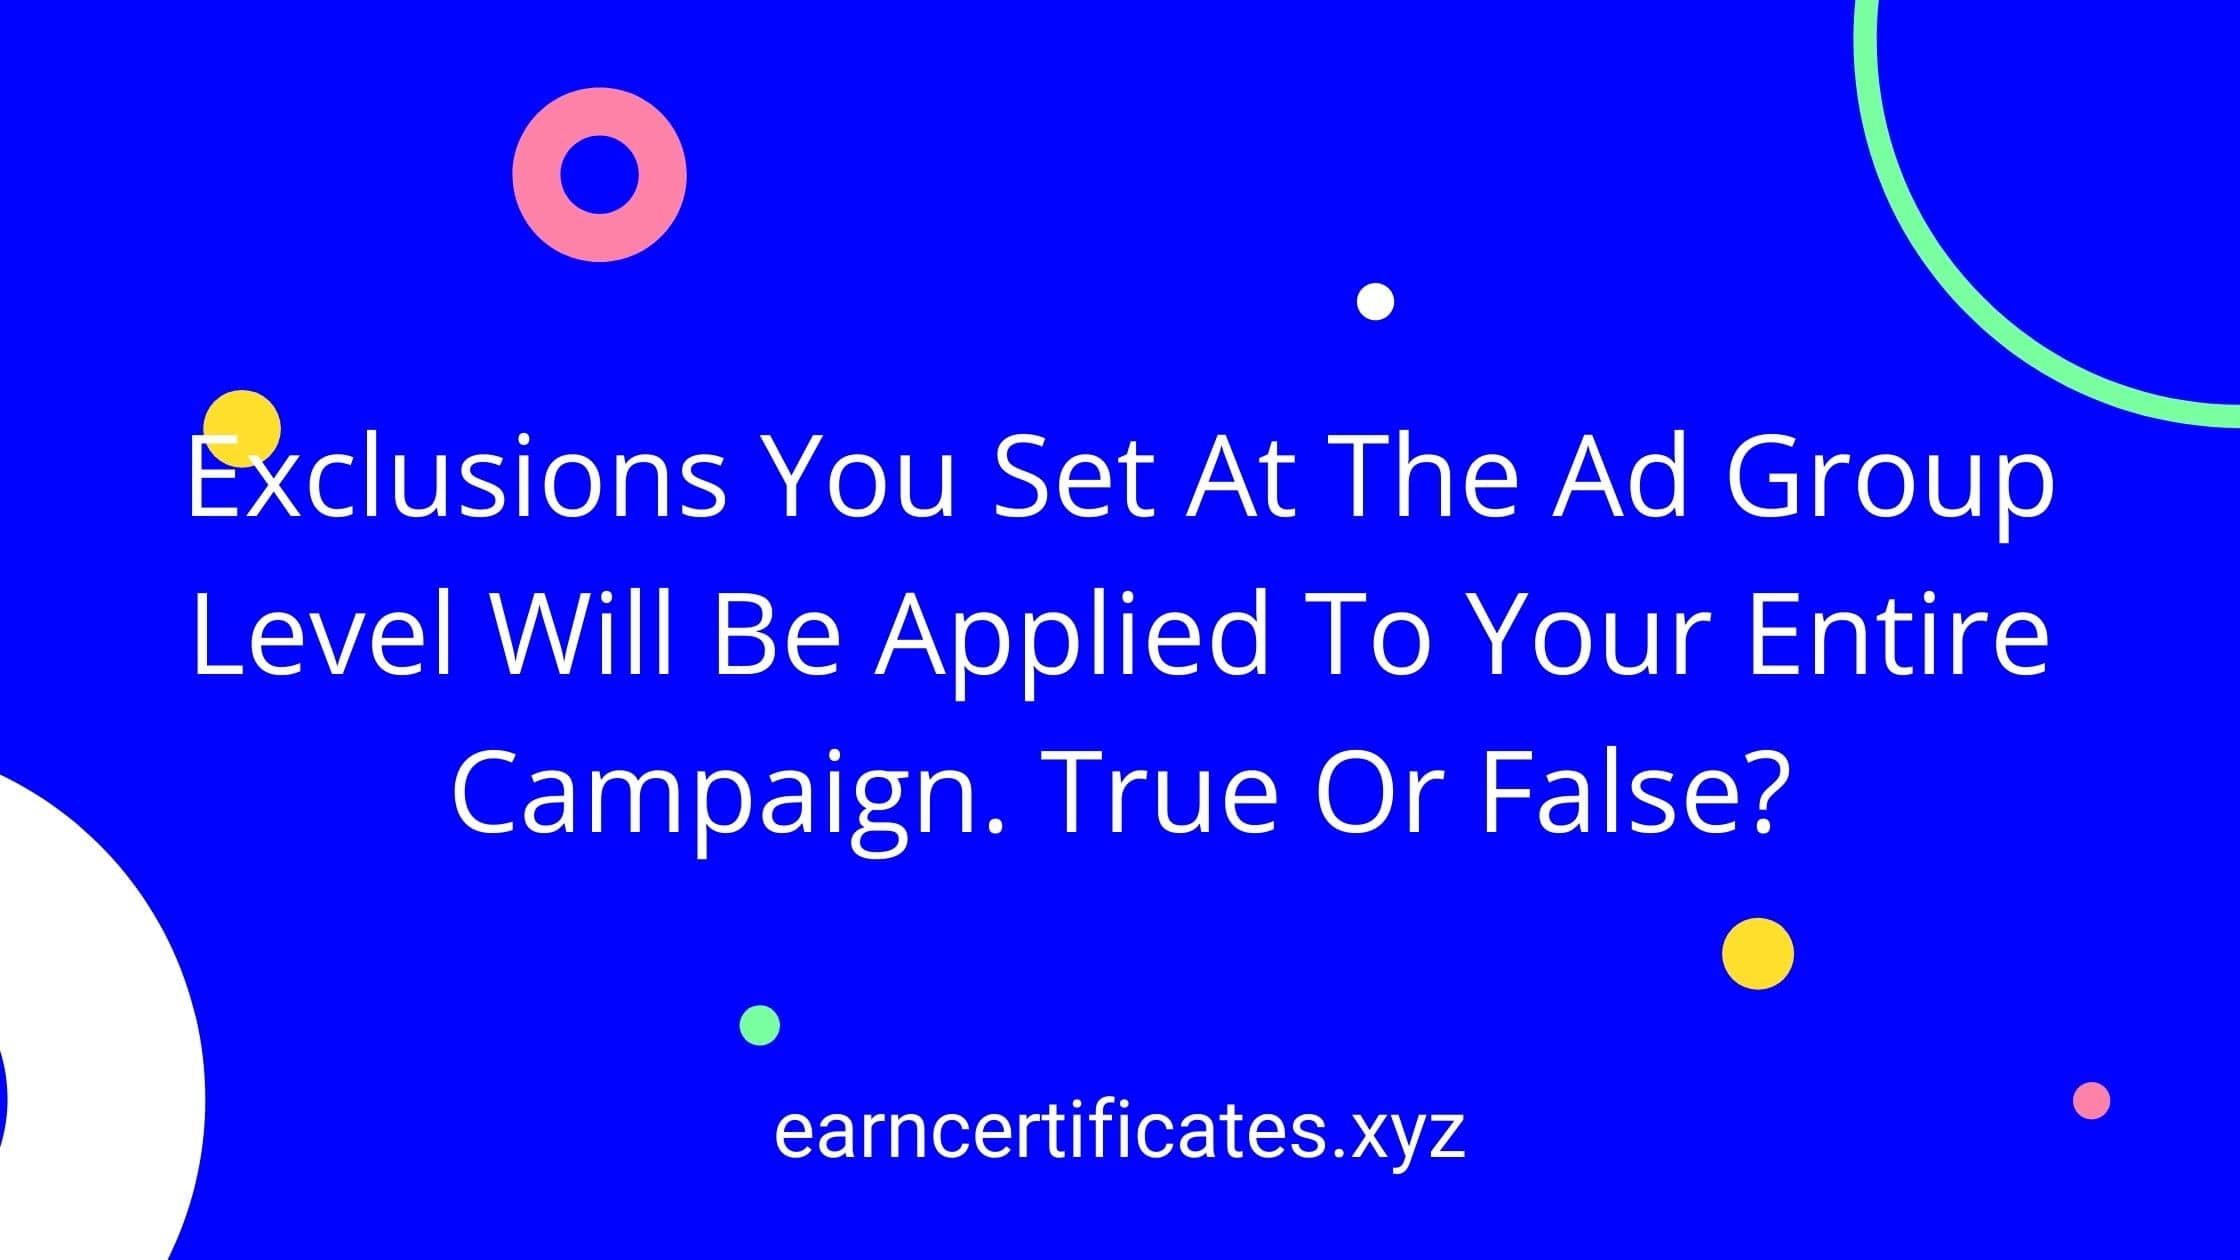 Exclusions You Set At The Ad Group Level Will Be Applied To Your Entire Campaign. True Or False?